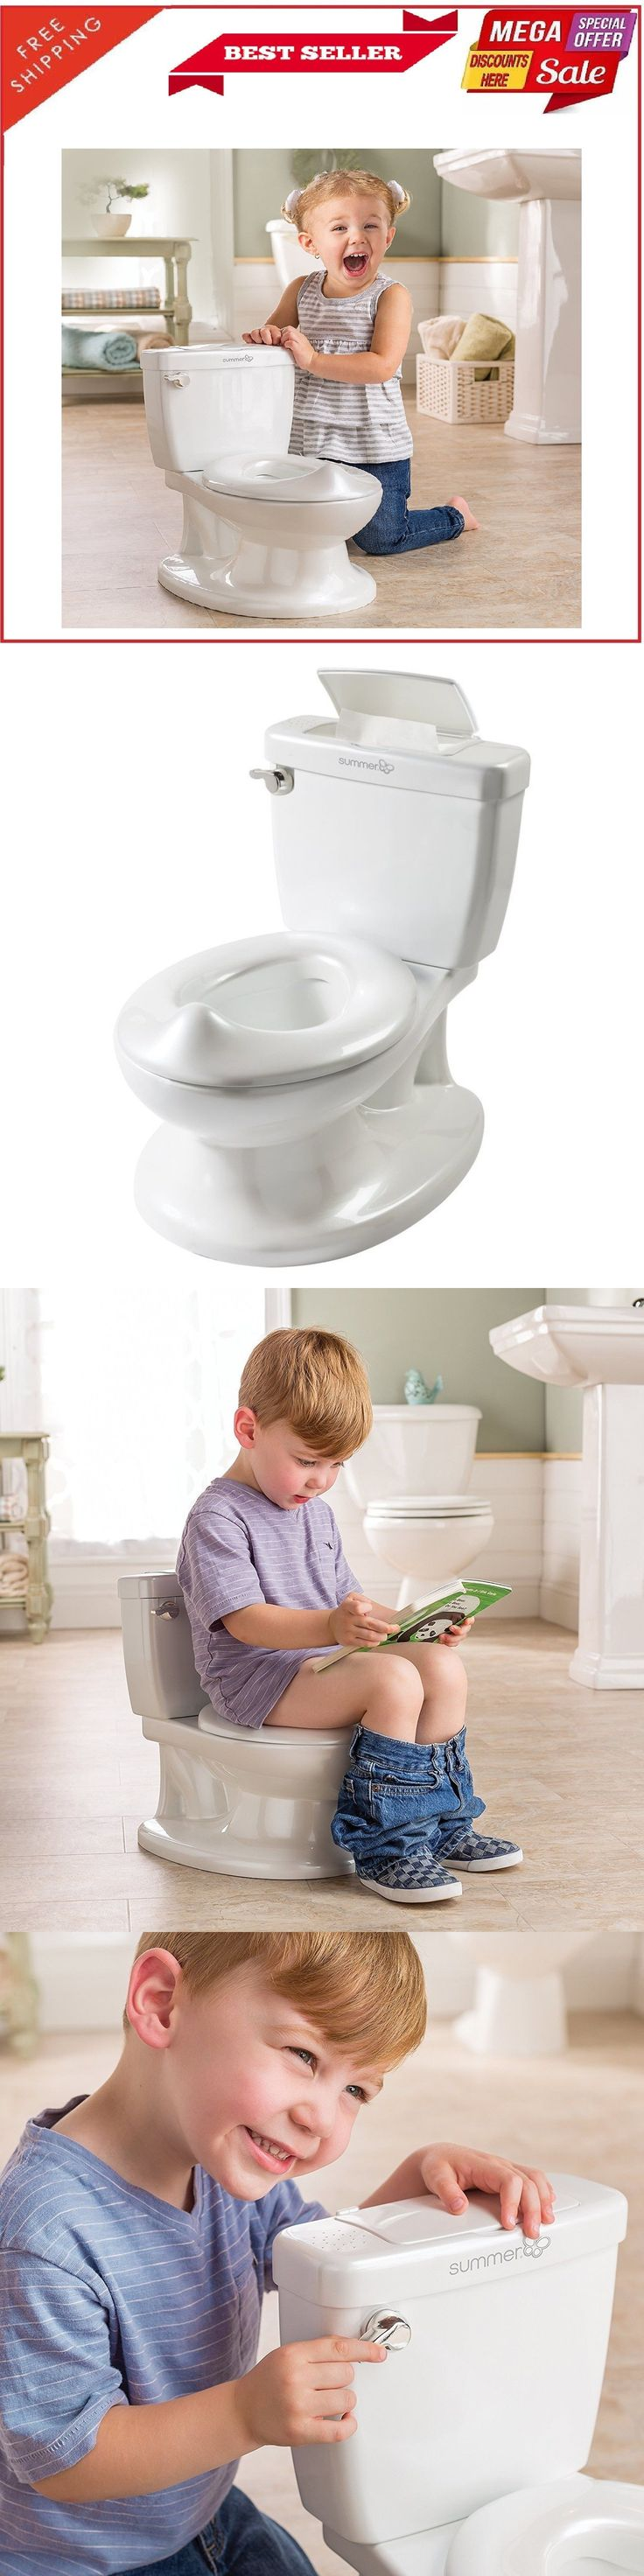 Potty Training 37631: Infant Potty Training Baby Toilet Seat Portable Kids Toddler Chair Trainer Pot -> BUY IT NOW ONLY: $33.67 on eBay!